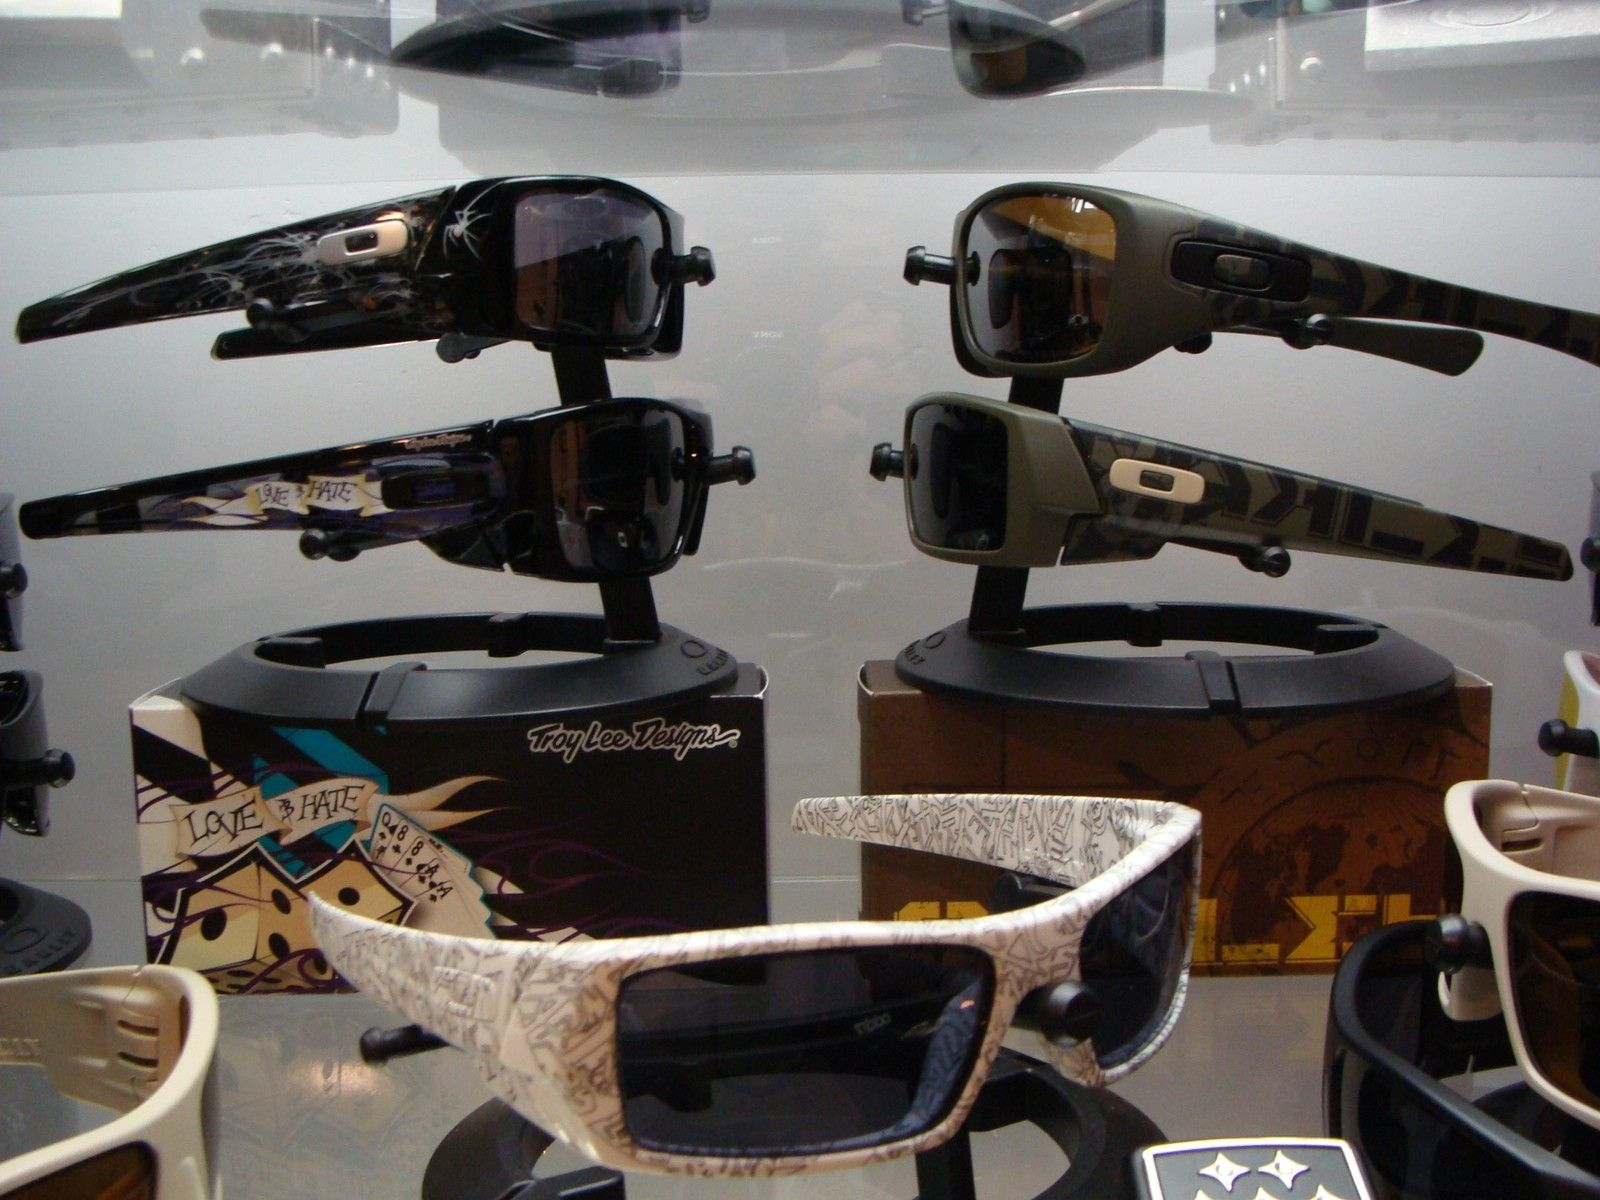 Preview Of My Oakley Collection - DSC07620.JPG